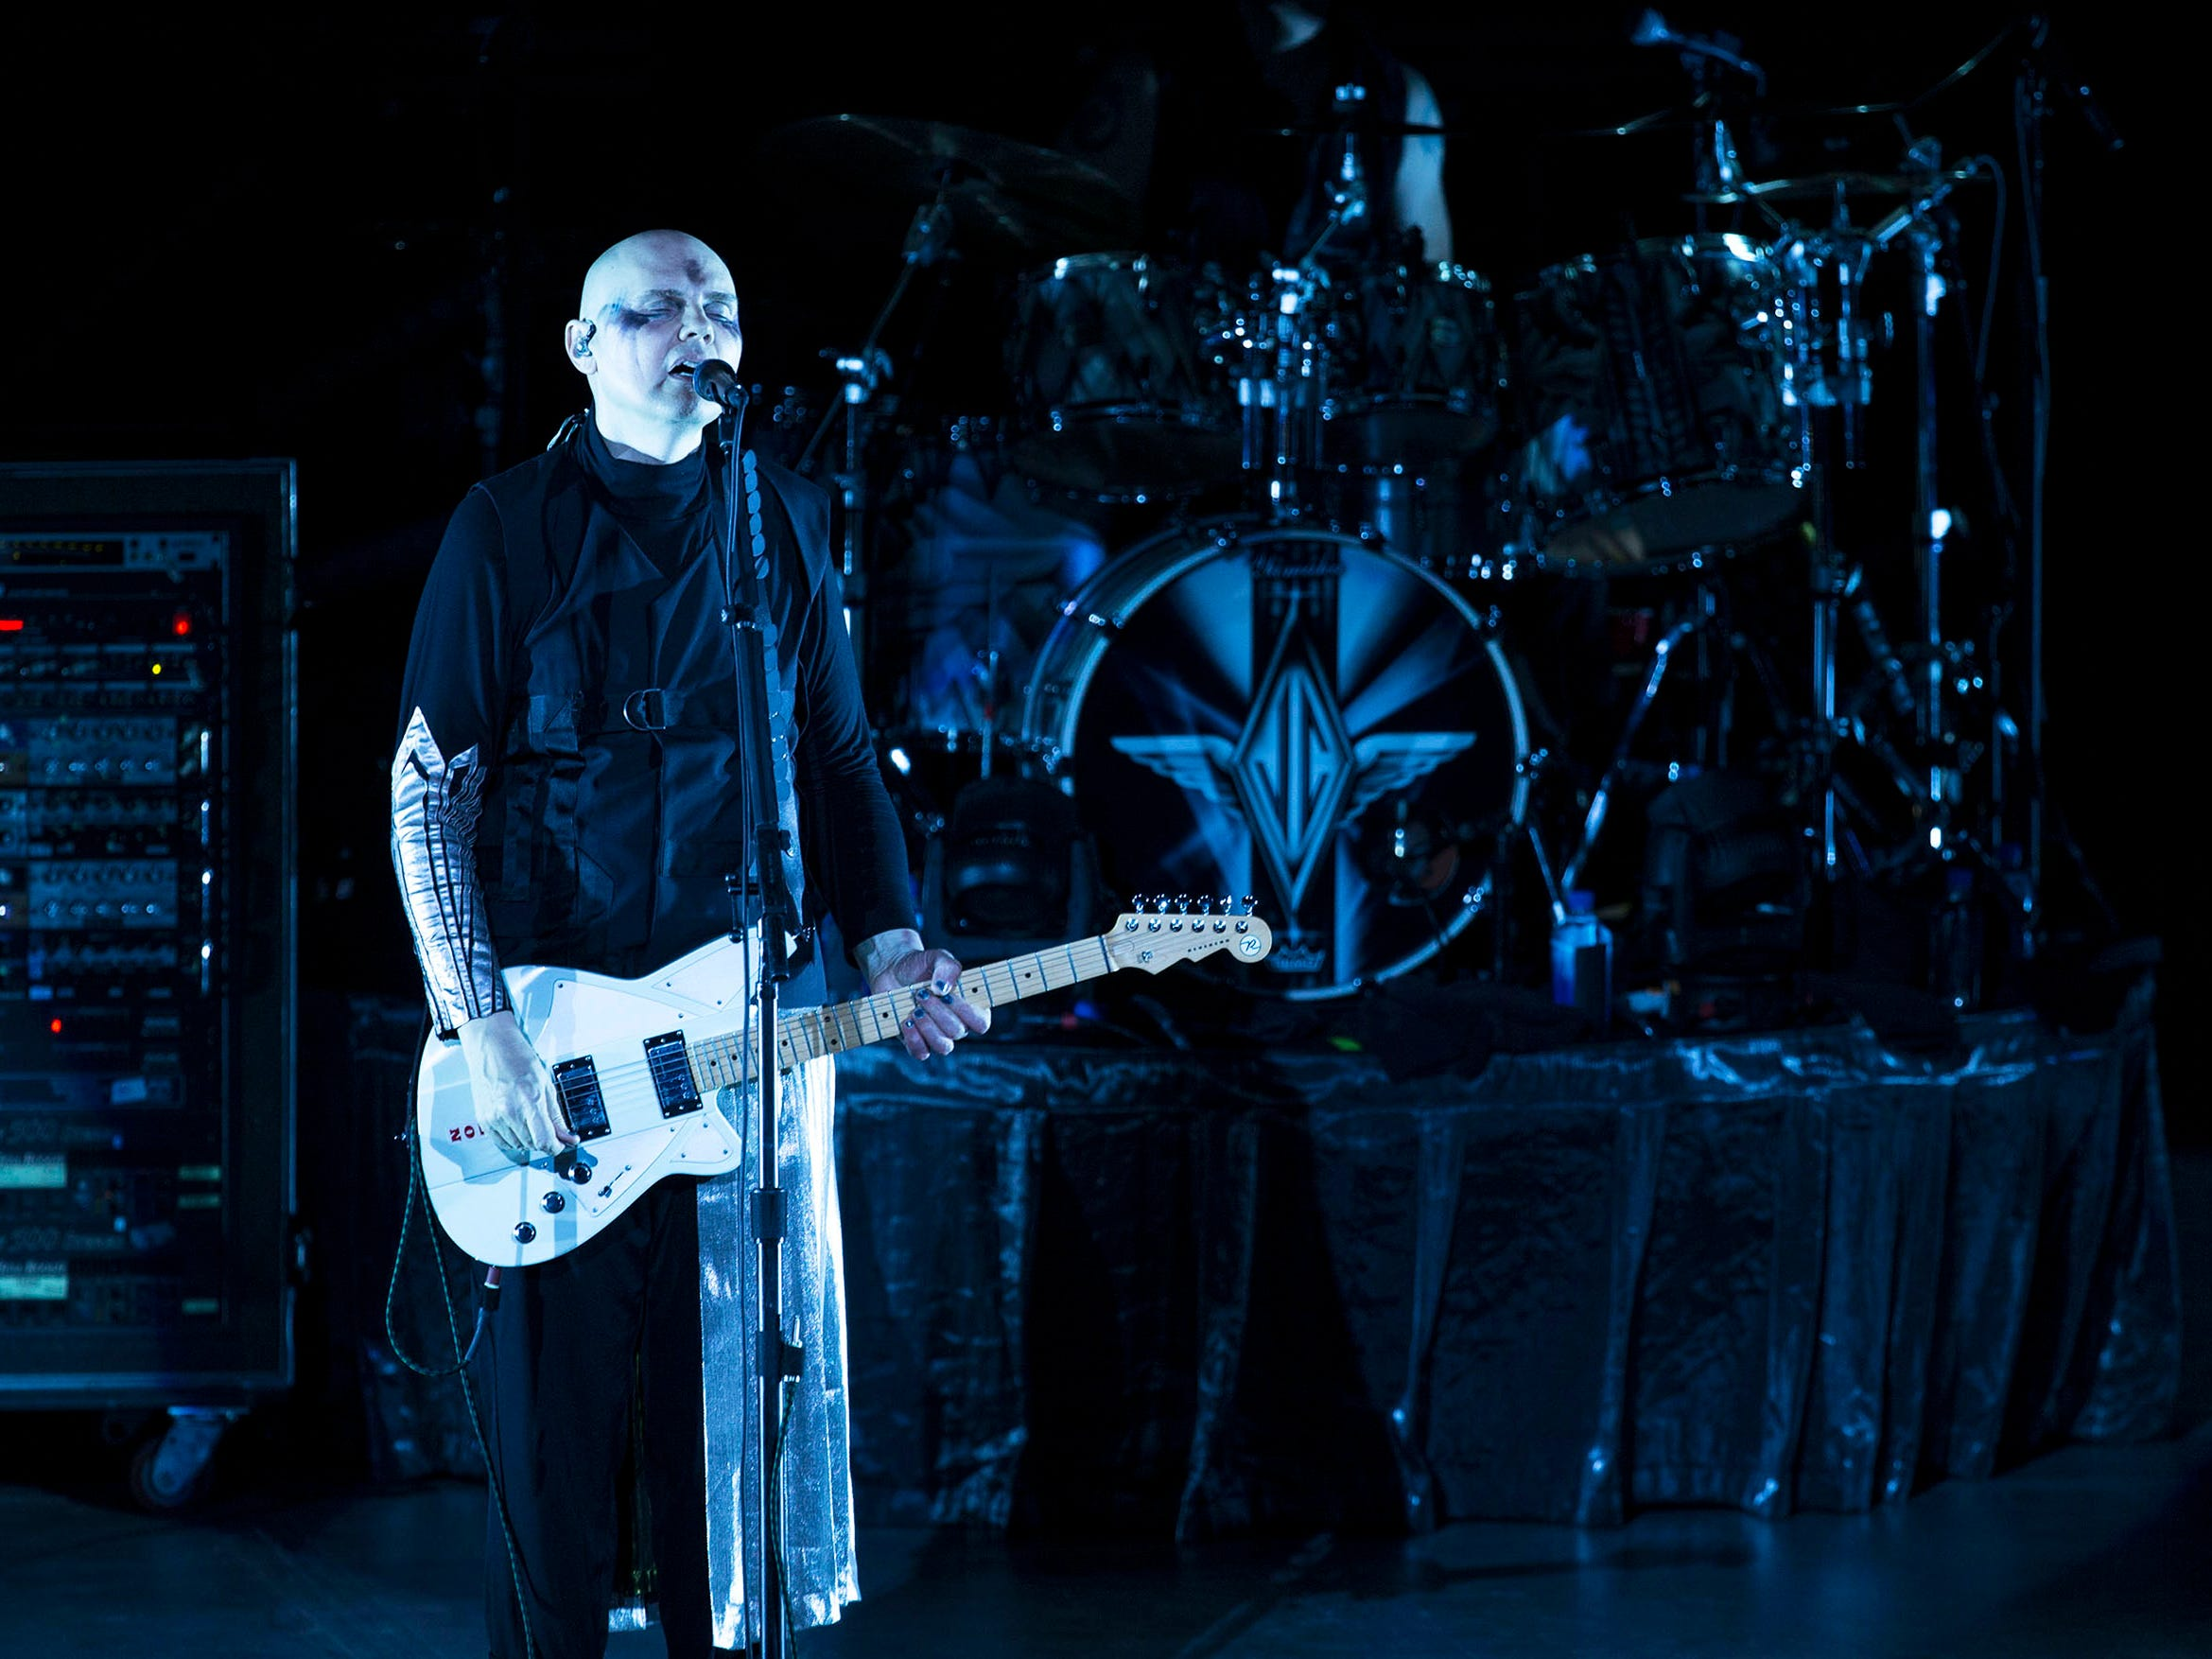 The Smashing Pumpkins perform their 30th anniversary concert at PNC Arts Center with a number of special guests for the occasion. Holmdel, NJ on Thursday, August 2, 2018